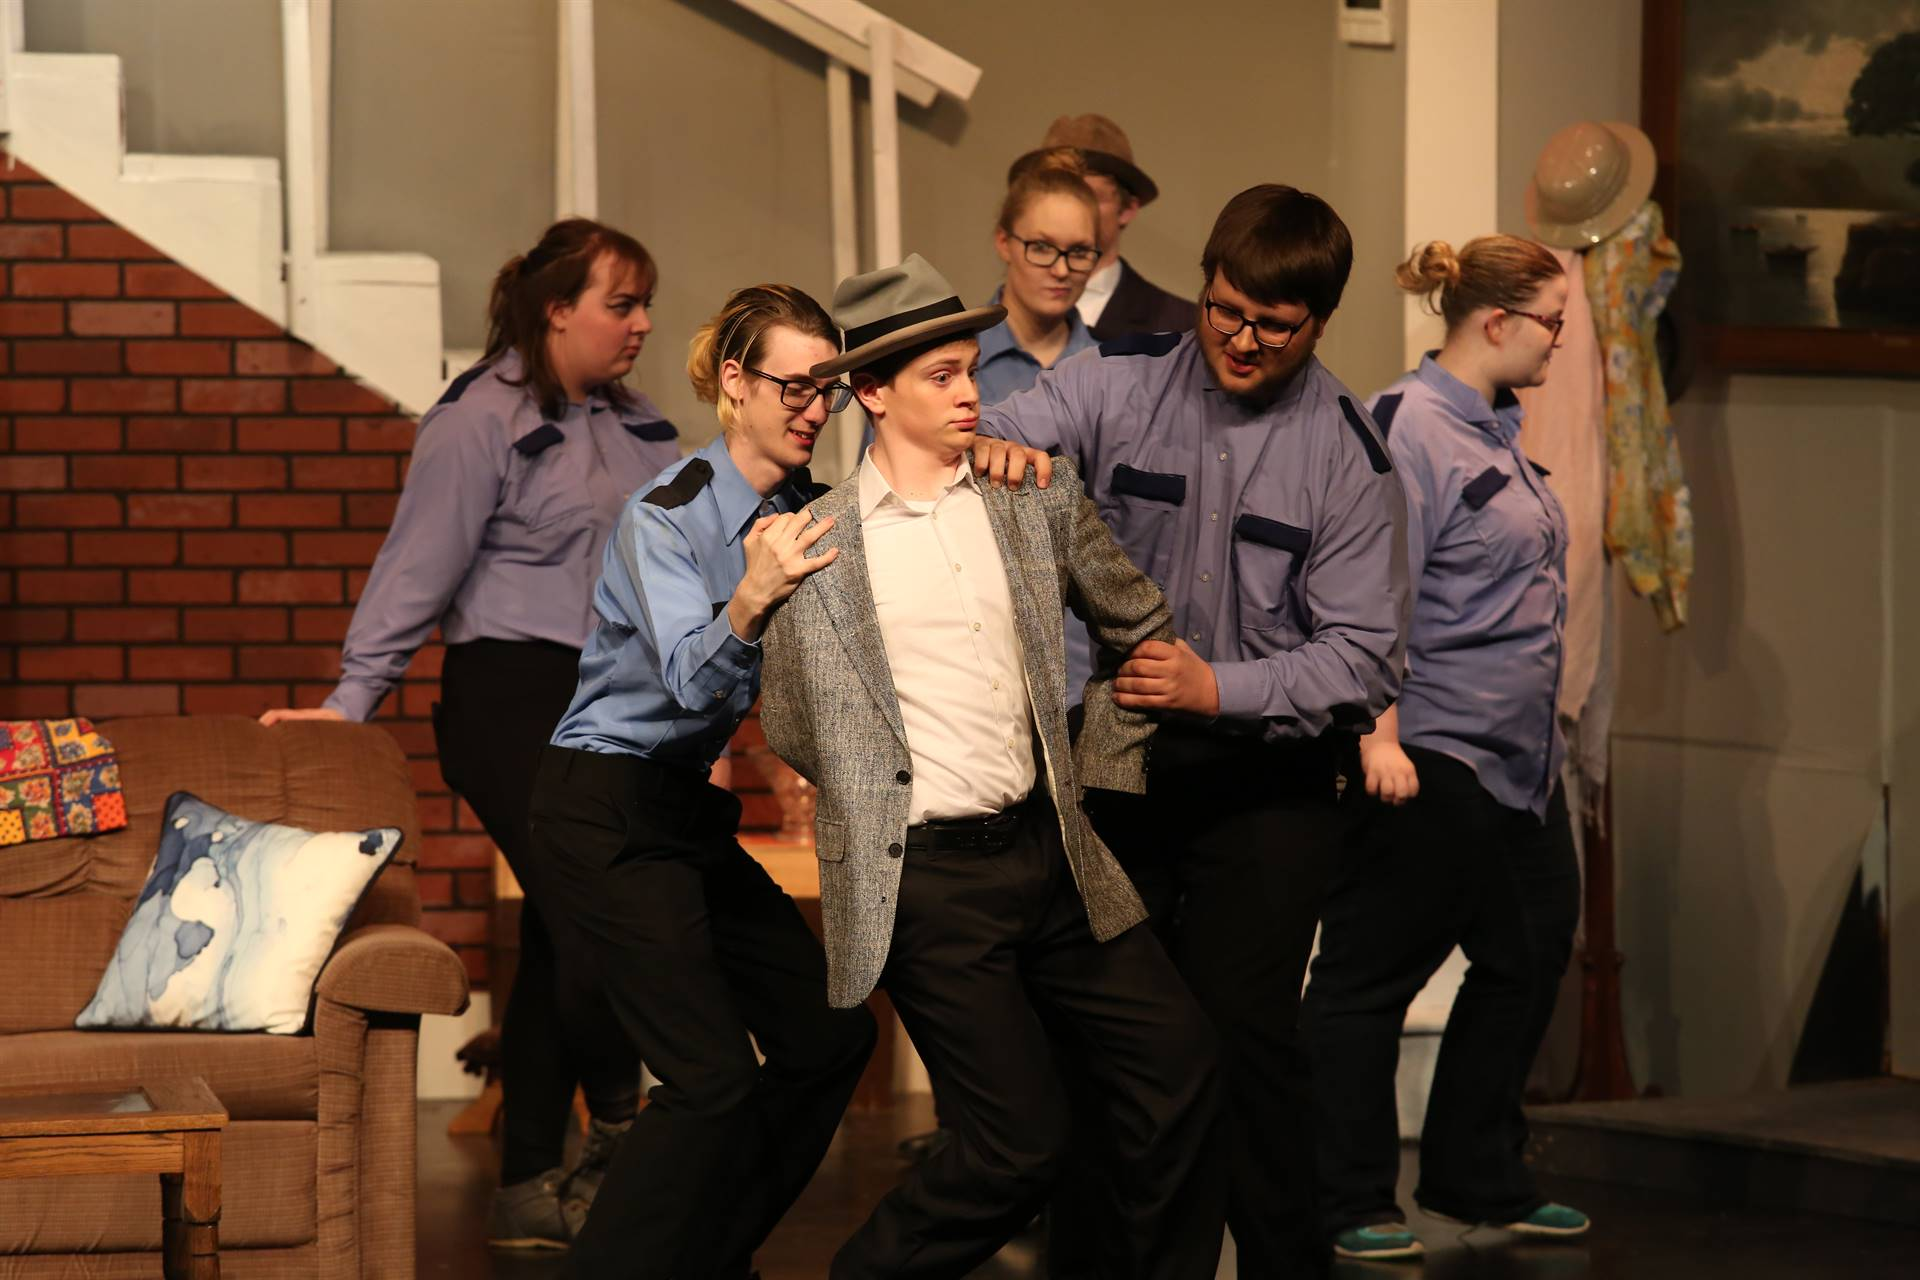 High school actors on stage performing in the play Arsenic and Old Lace